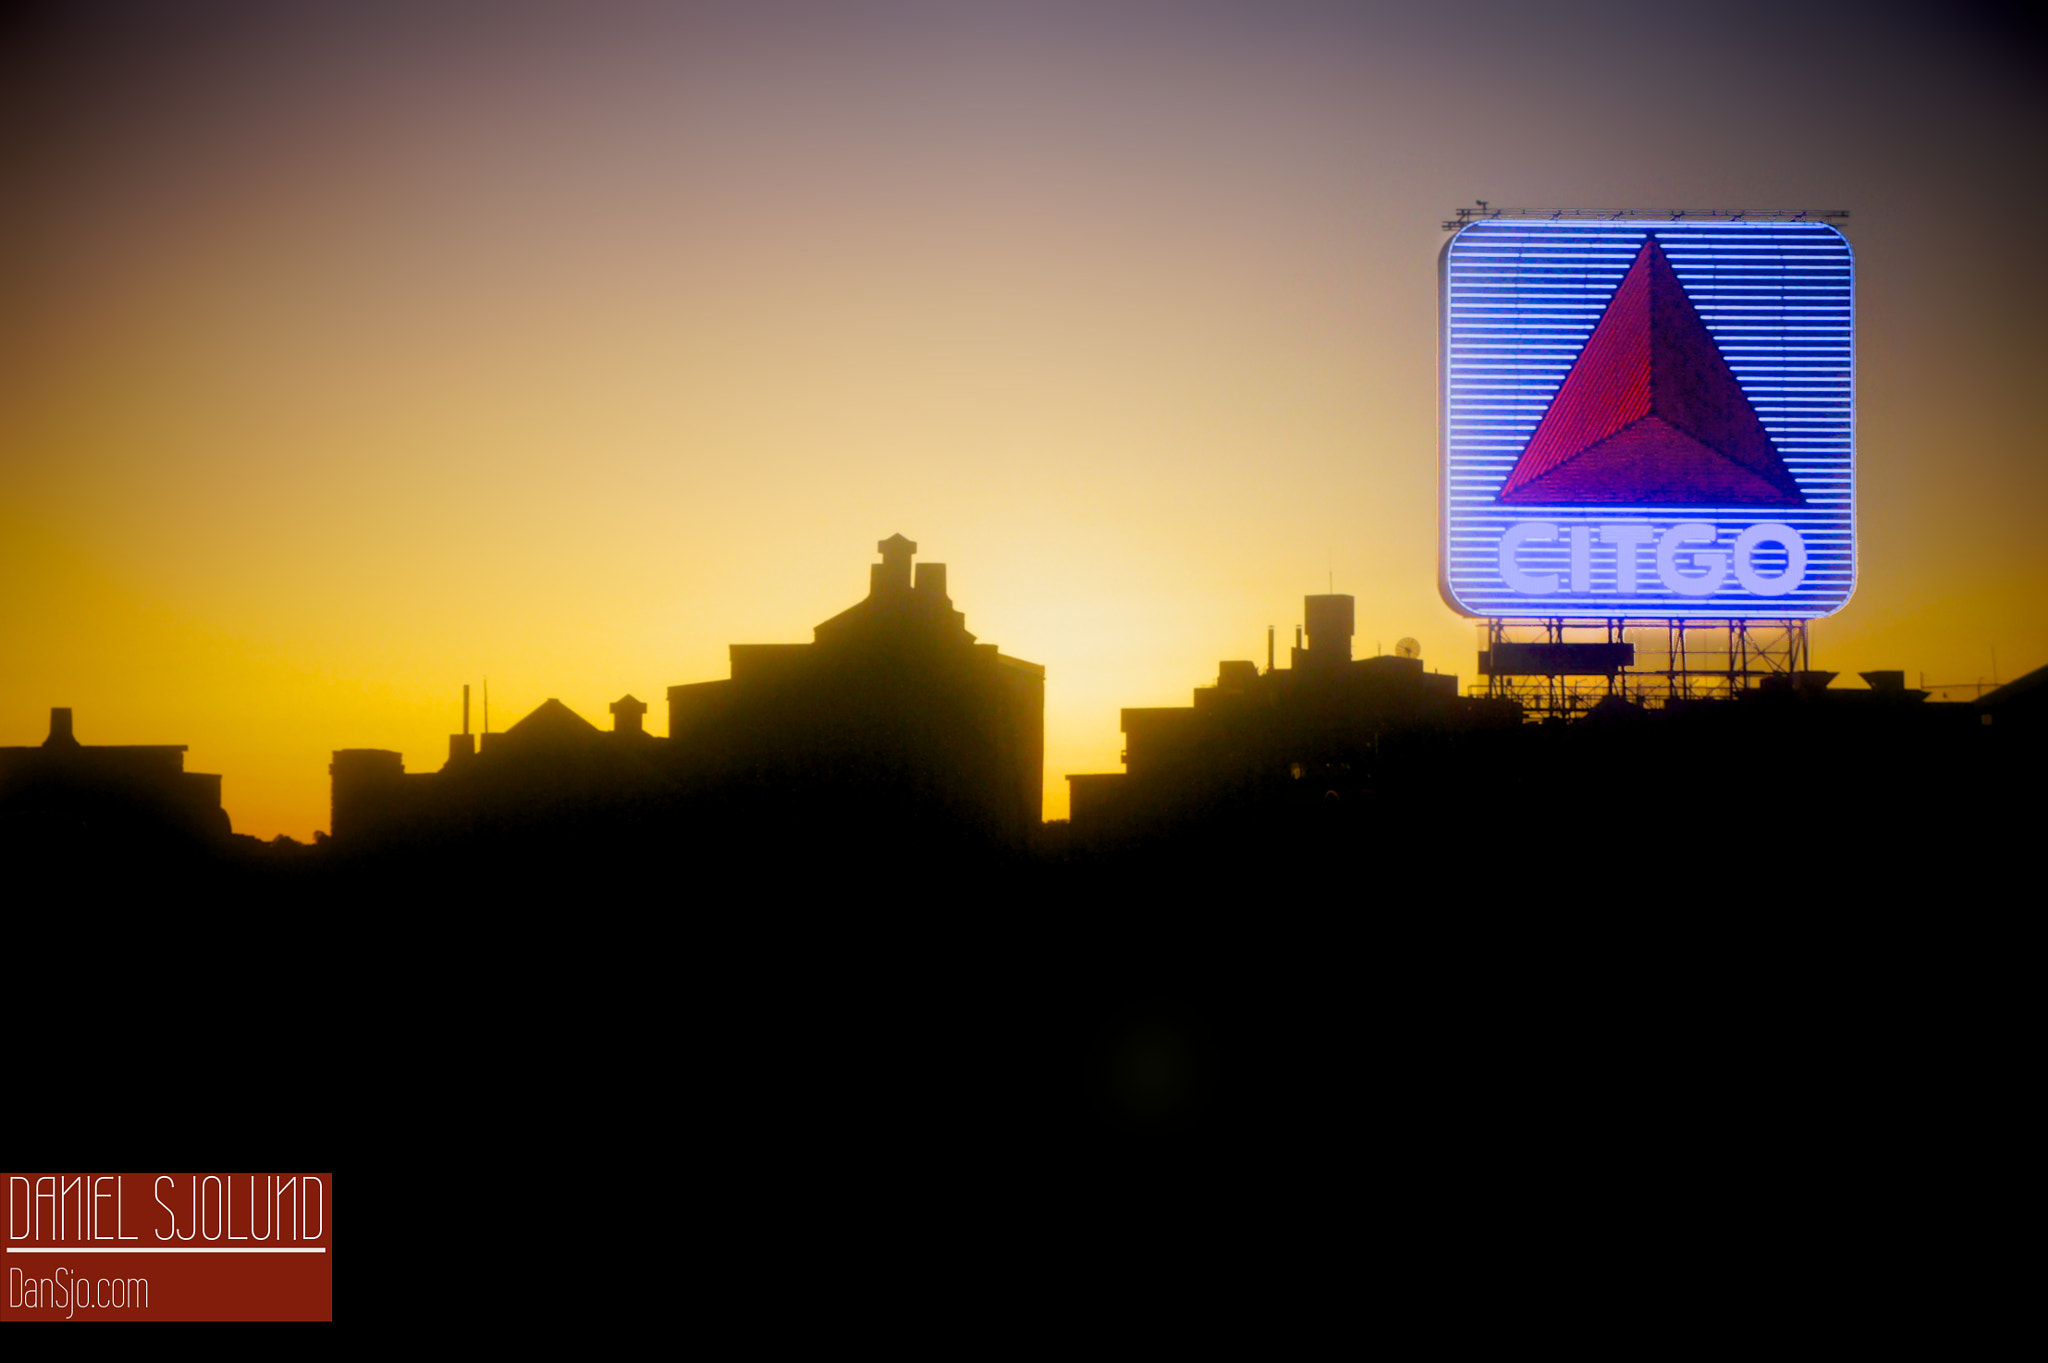 Photograph Citgo Landmark by Daniel Sjolund on 500px